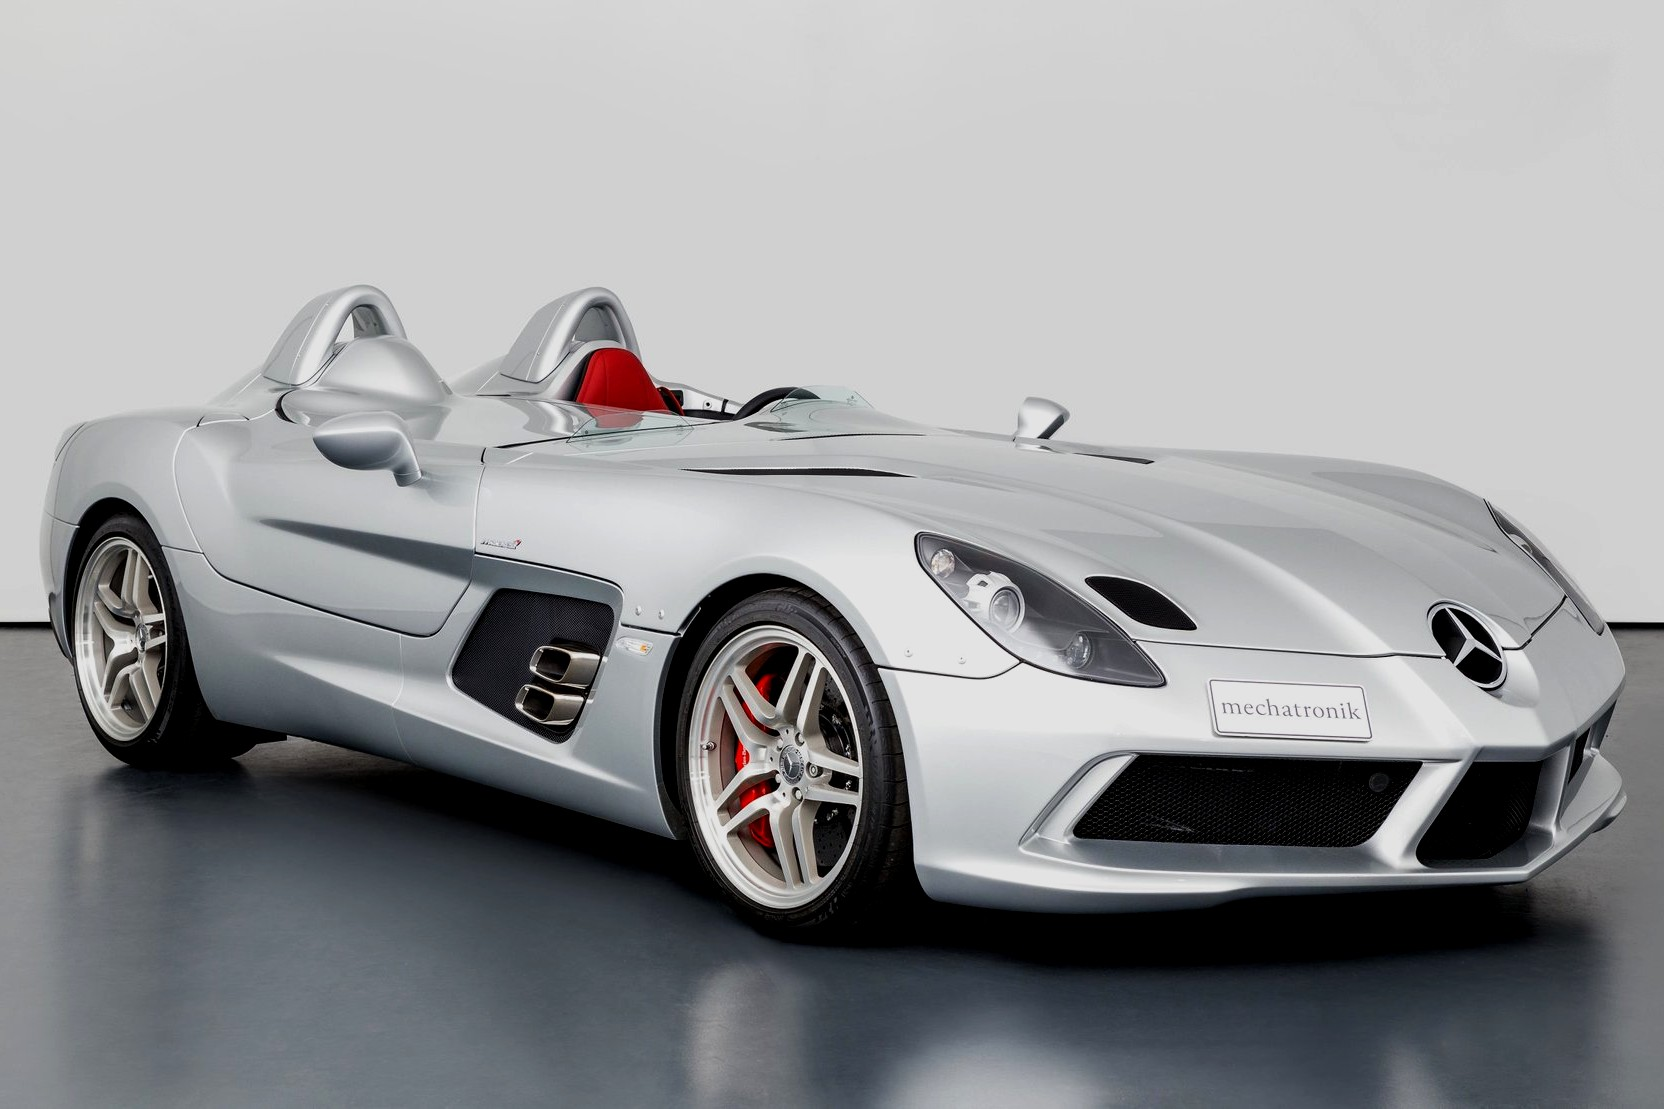 """""""Best exotic cars of all times: 2009 Mercedes-Benz SLR McLaren Stirling Moss, Pleidelsheim Germany, approx. $3,044,084."""""""